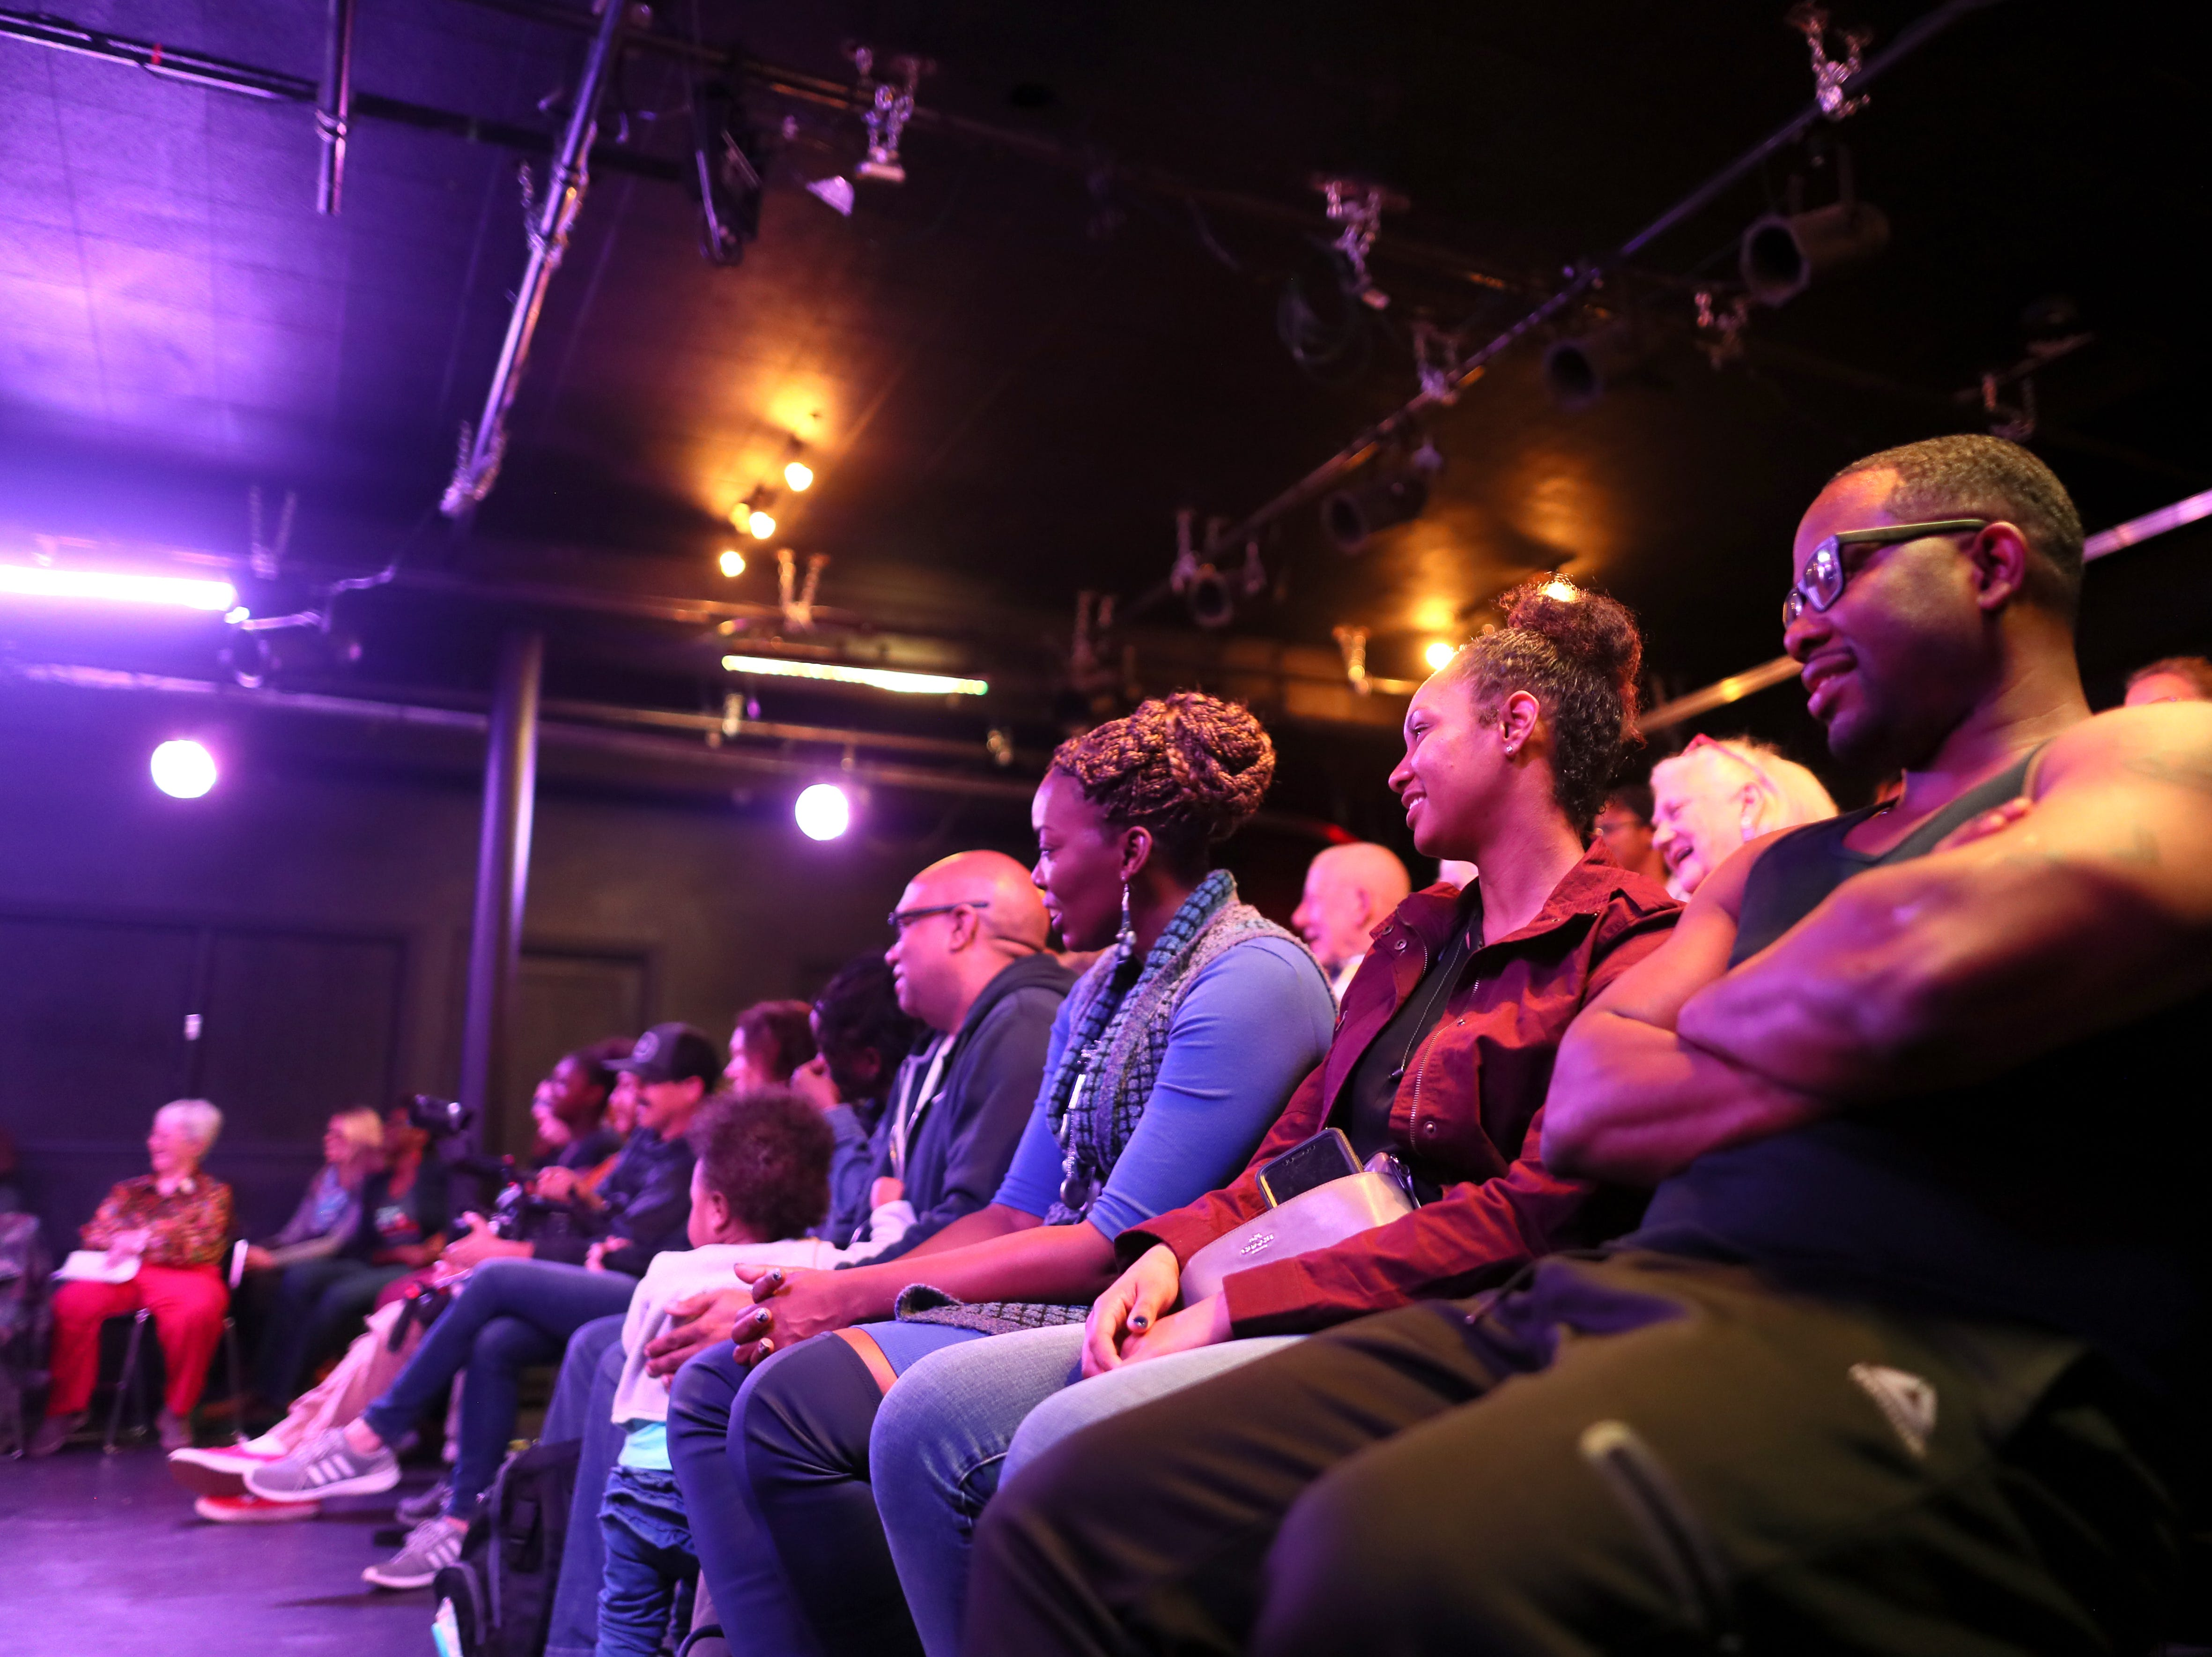 Audience members watch the show at the Playback Theatre in the Cooper-Young neighborhood on Saturday, Dec. 1, 2018.